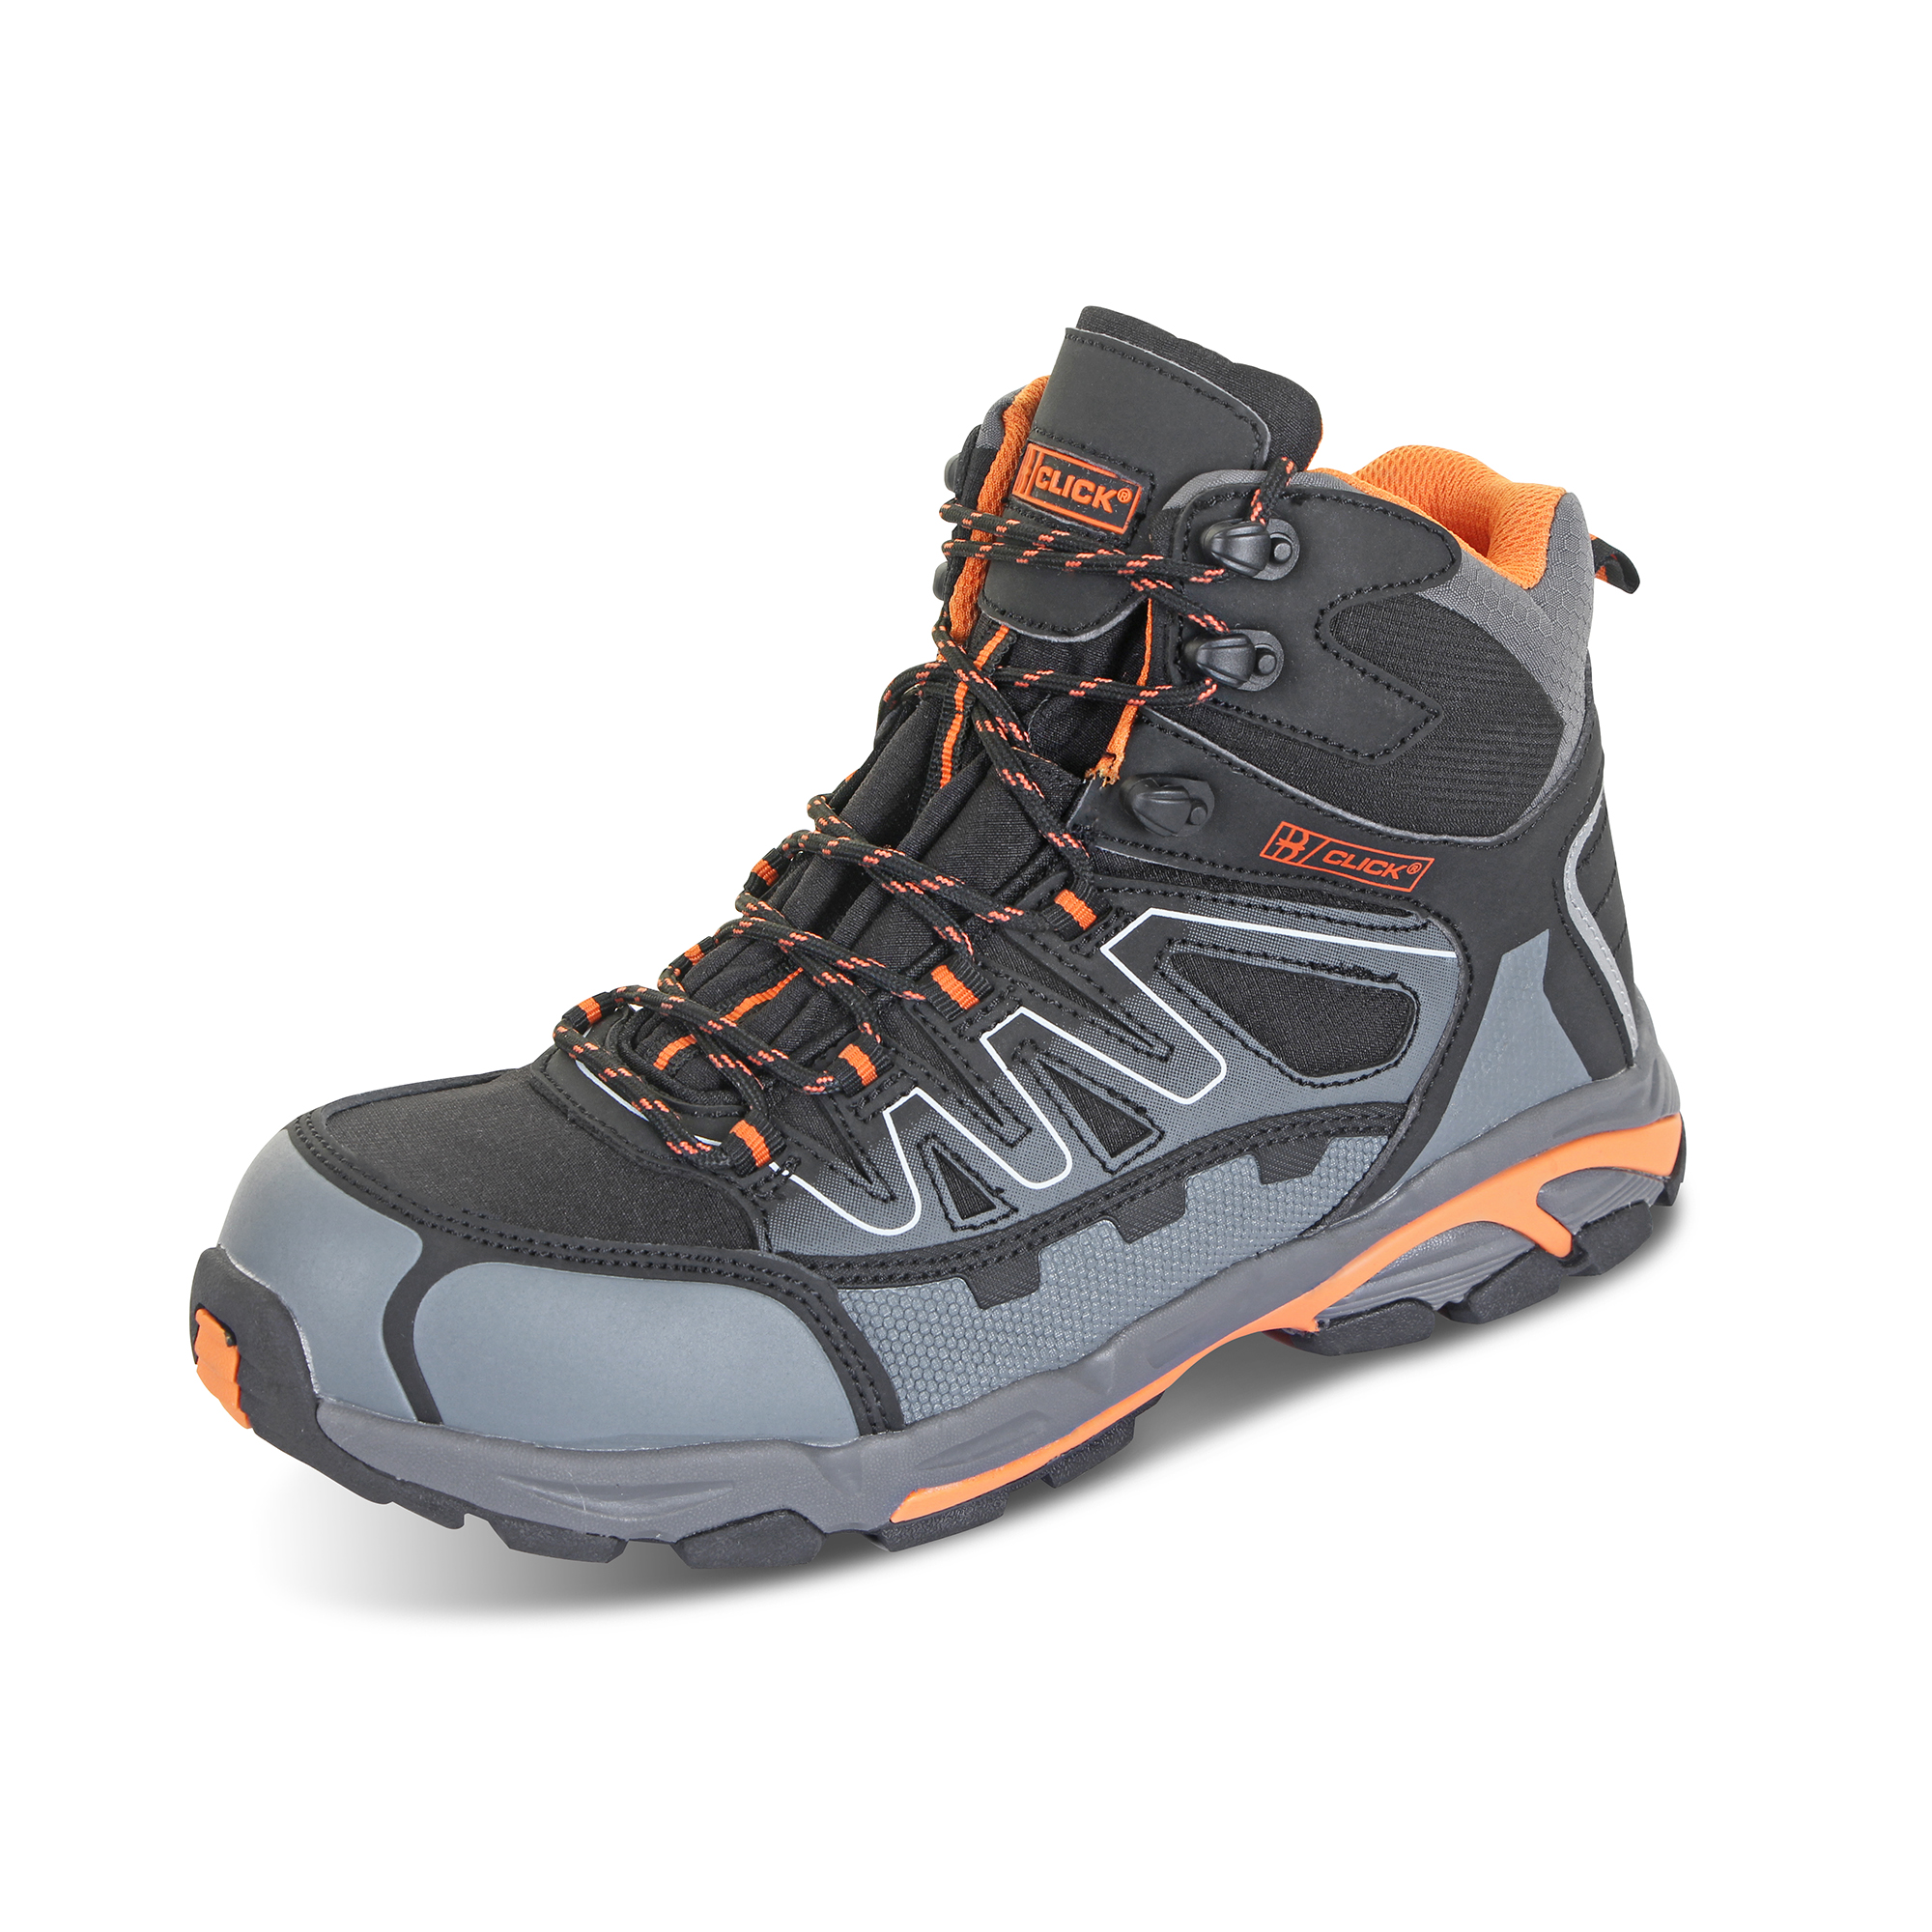 Limitless Click Footwear Leather S3 Hiker Boot Composite Toe Size 6.5 Blk/Grey Ref CF3506.5 *Up to 3 Day Leadtime*